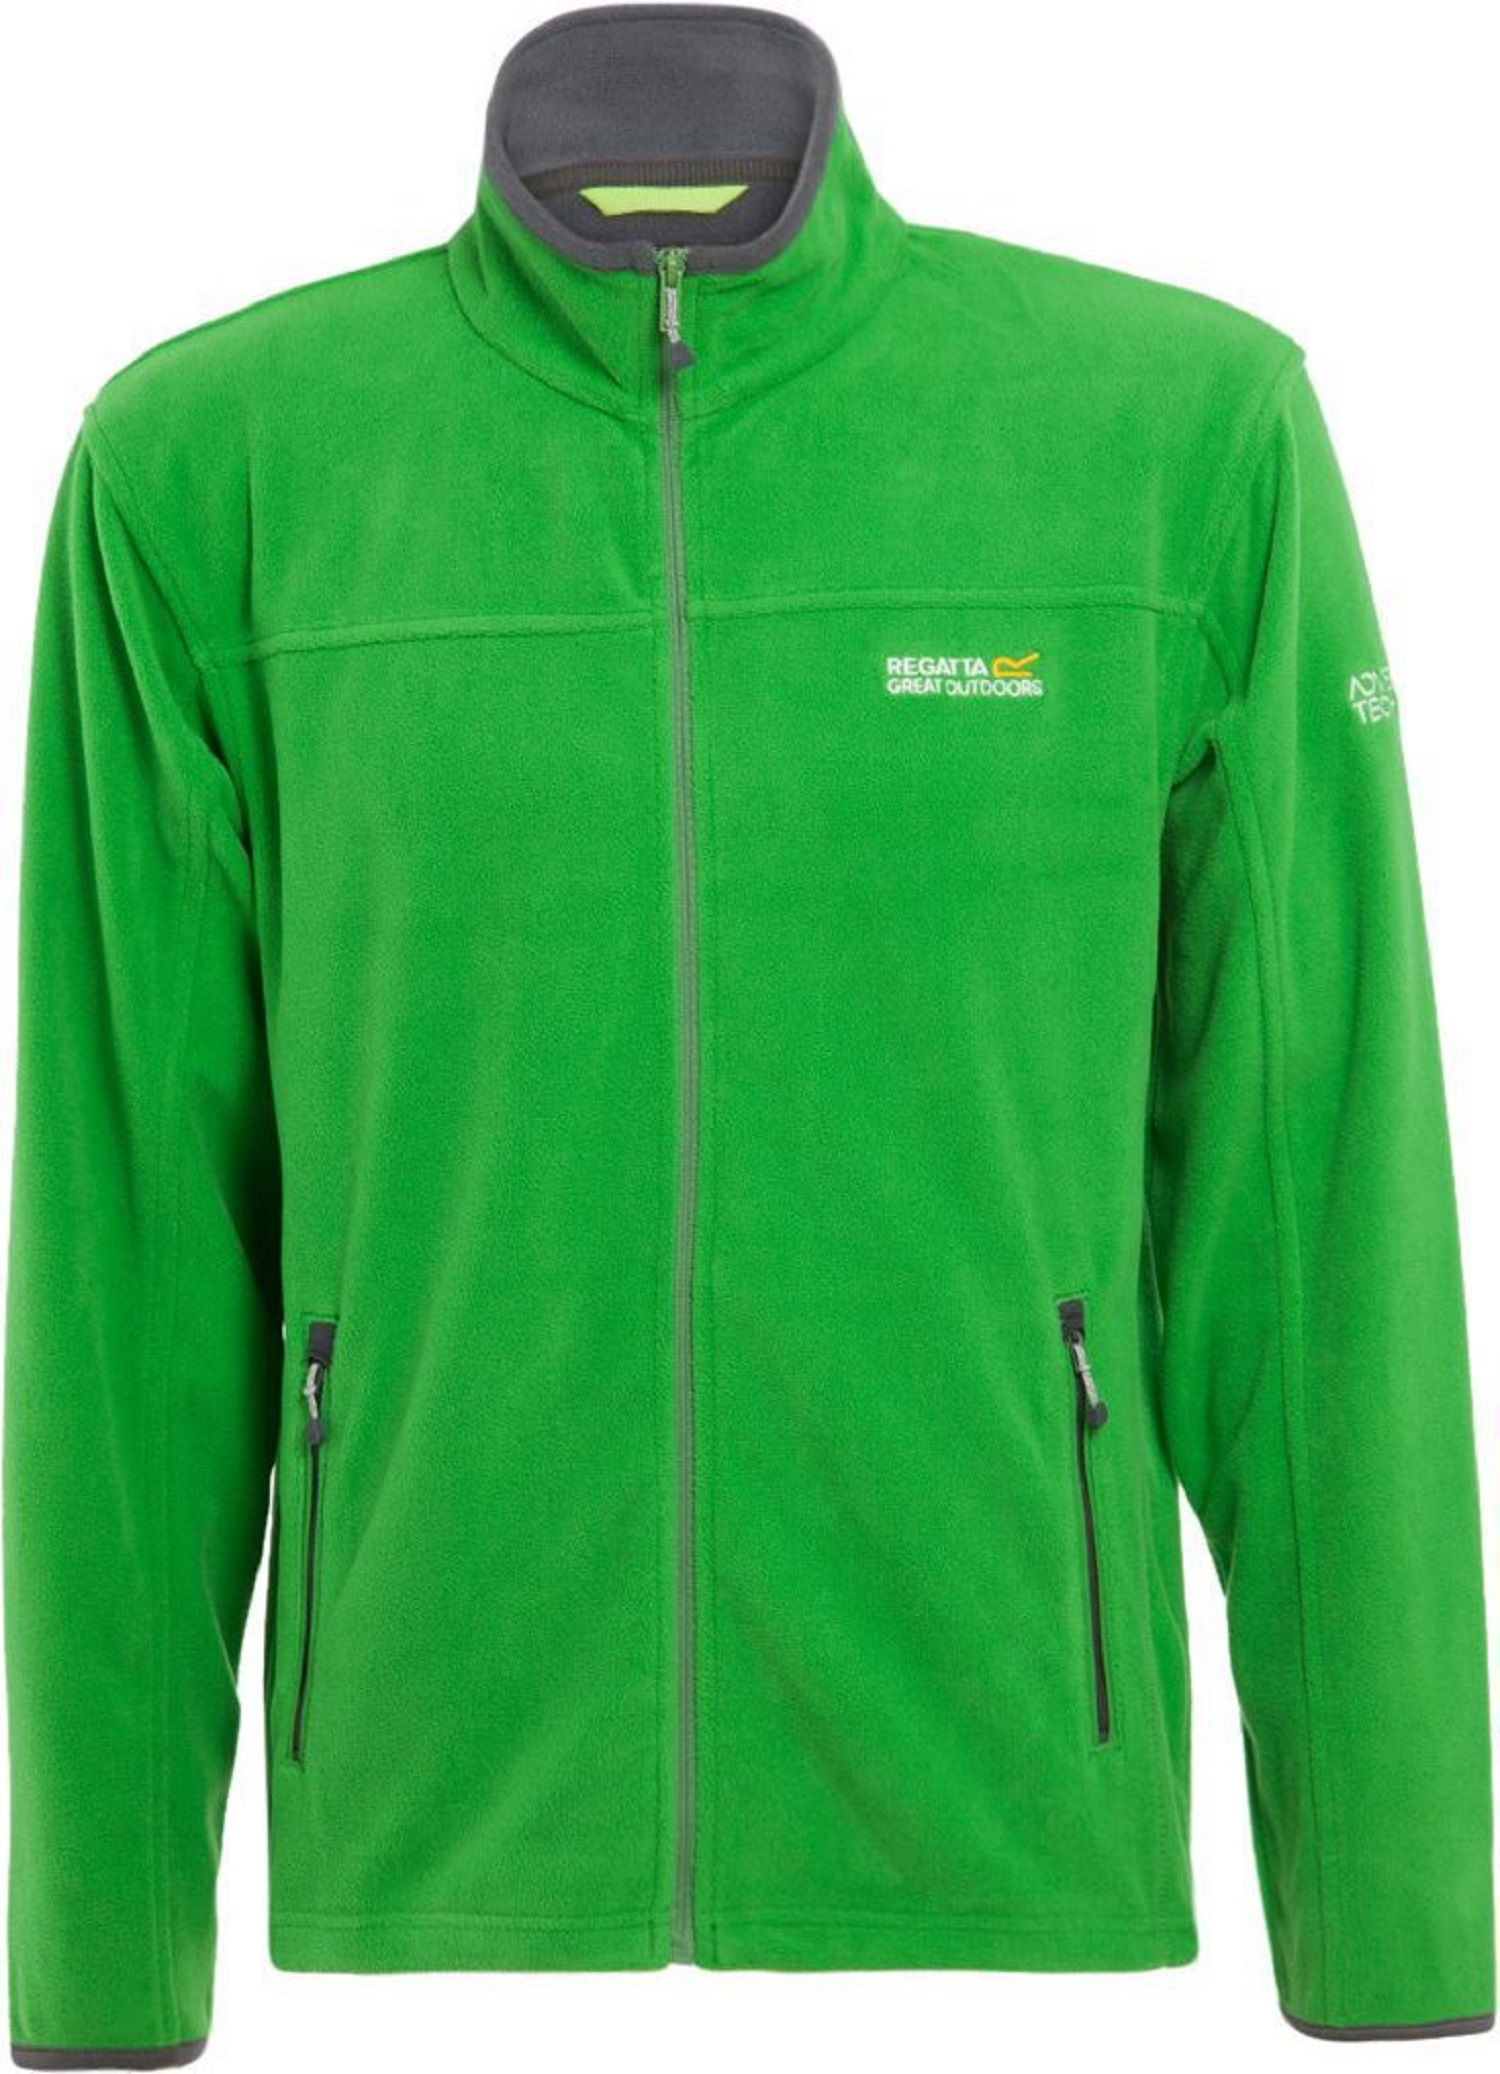 Regatta Stanton II Mens Full Zip Mid-Weight Fleece Jacket | eBay